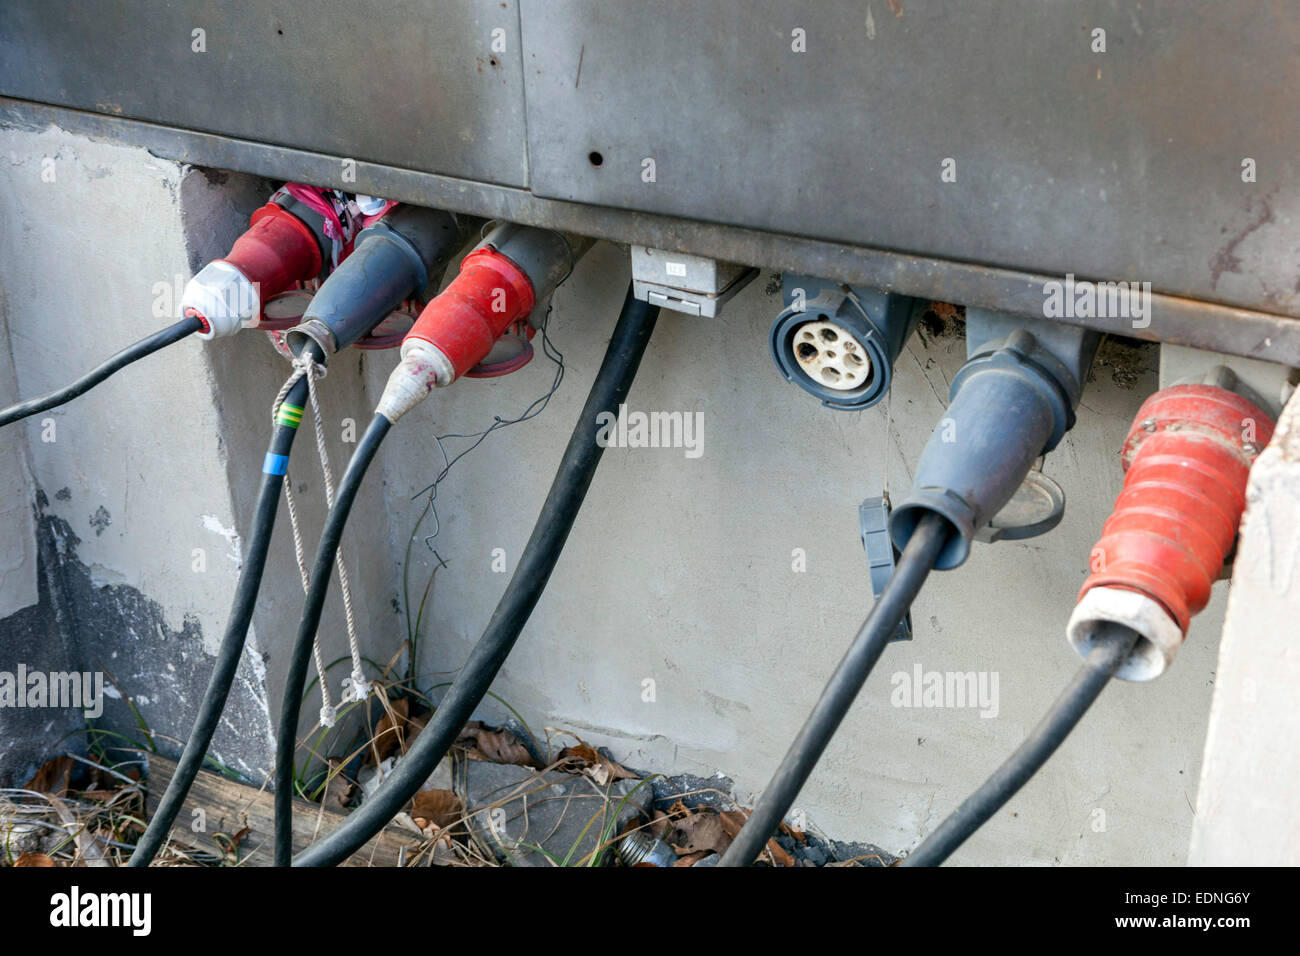 elektrische anschl sse stockfoto bild 77305731 alamy. Black Bedroom Furniture Sets. Home Design Ideas